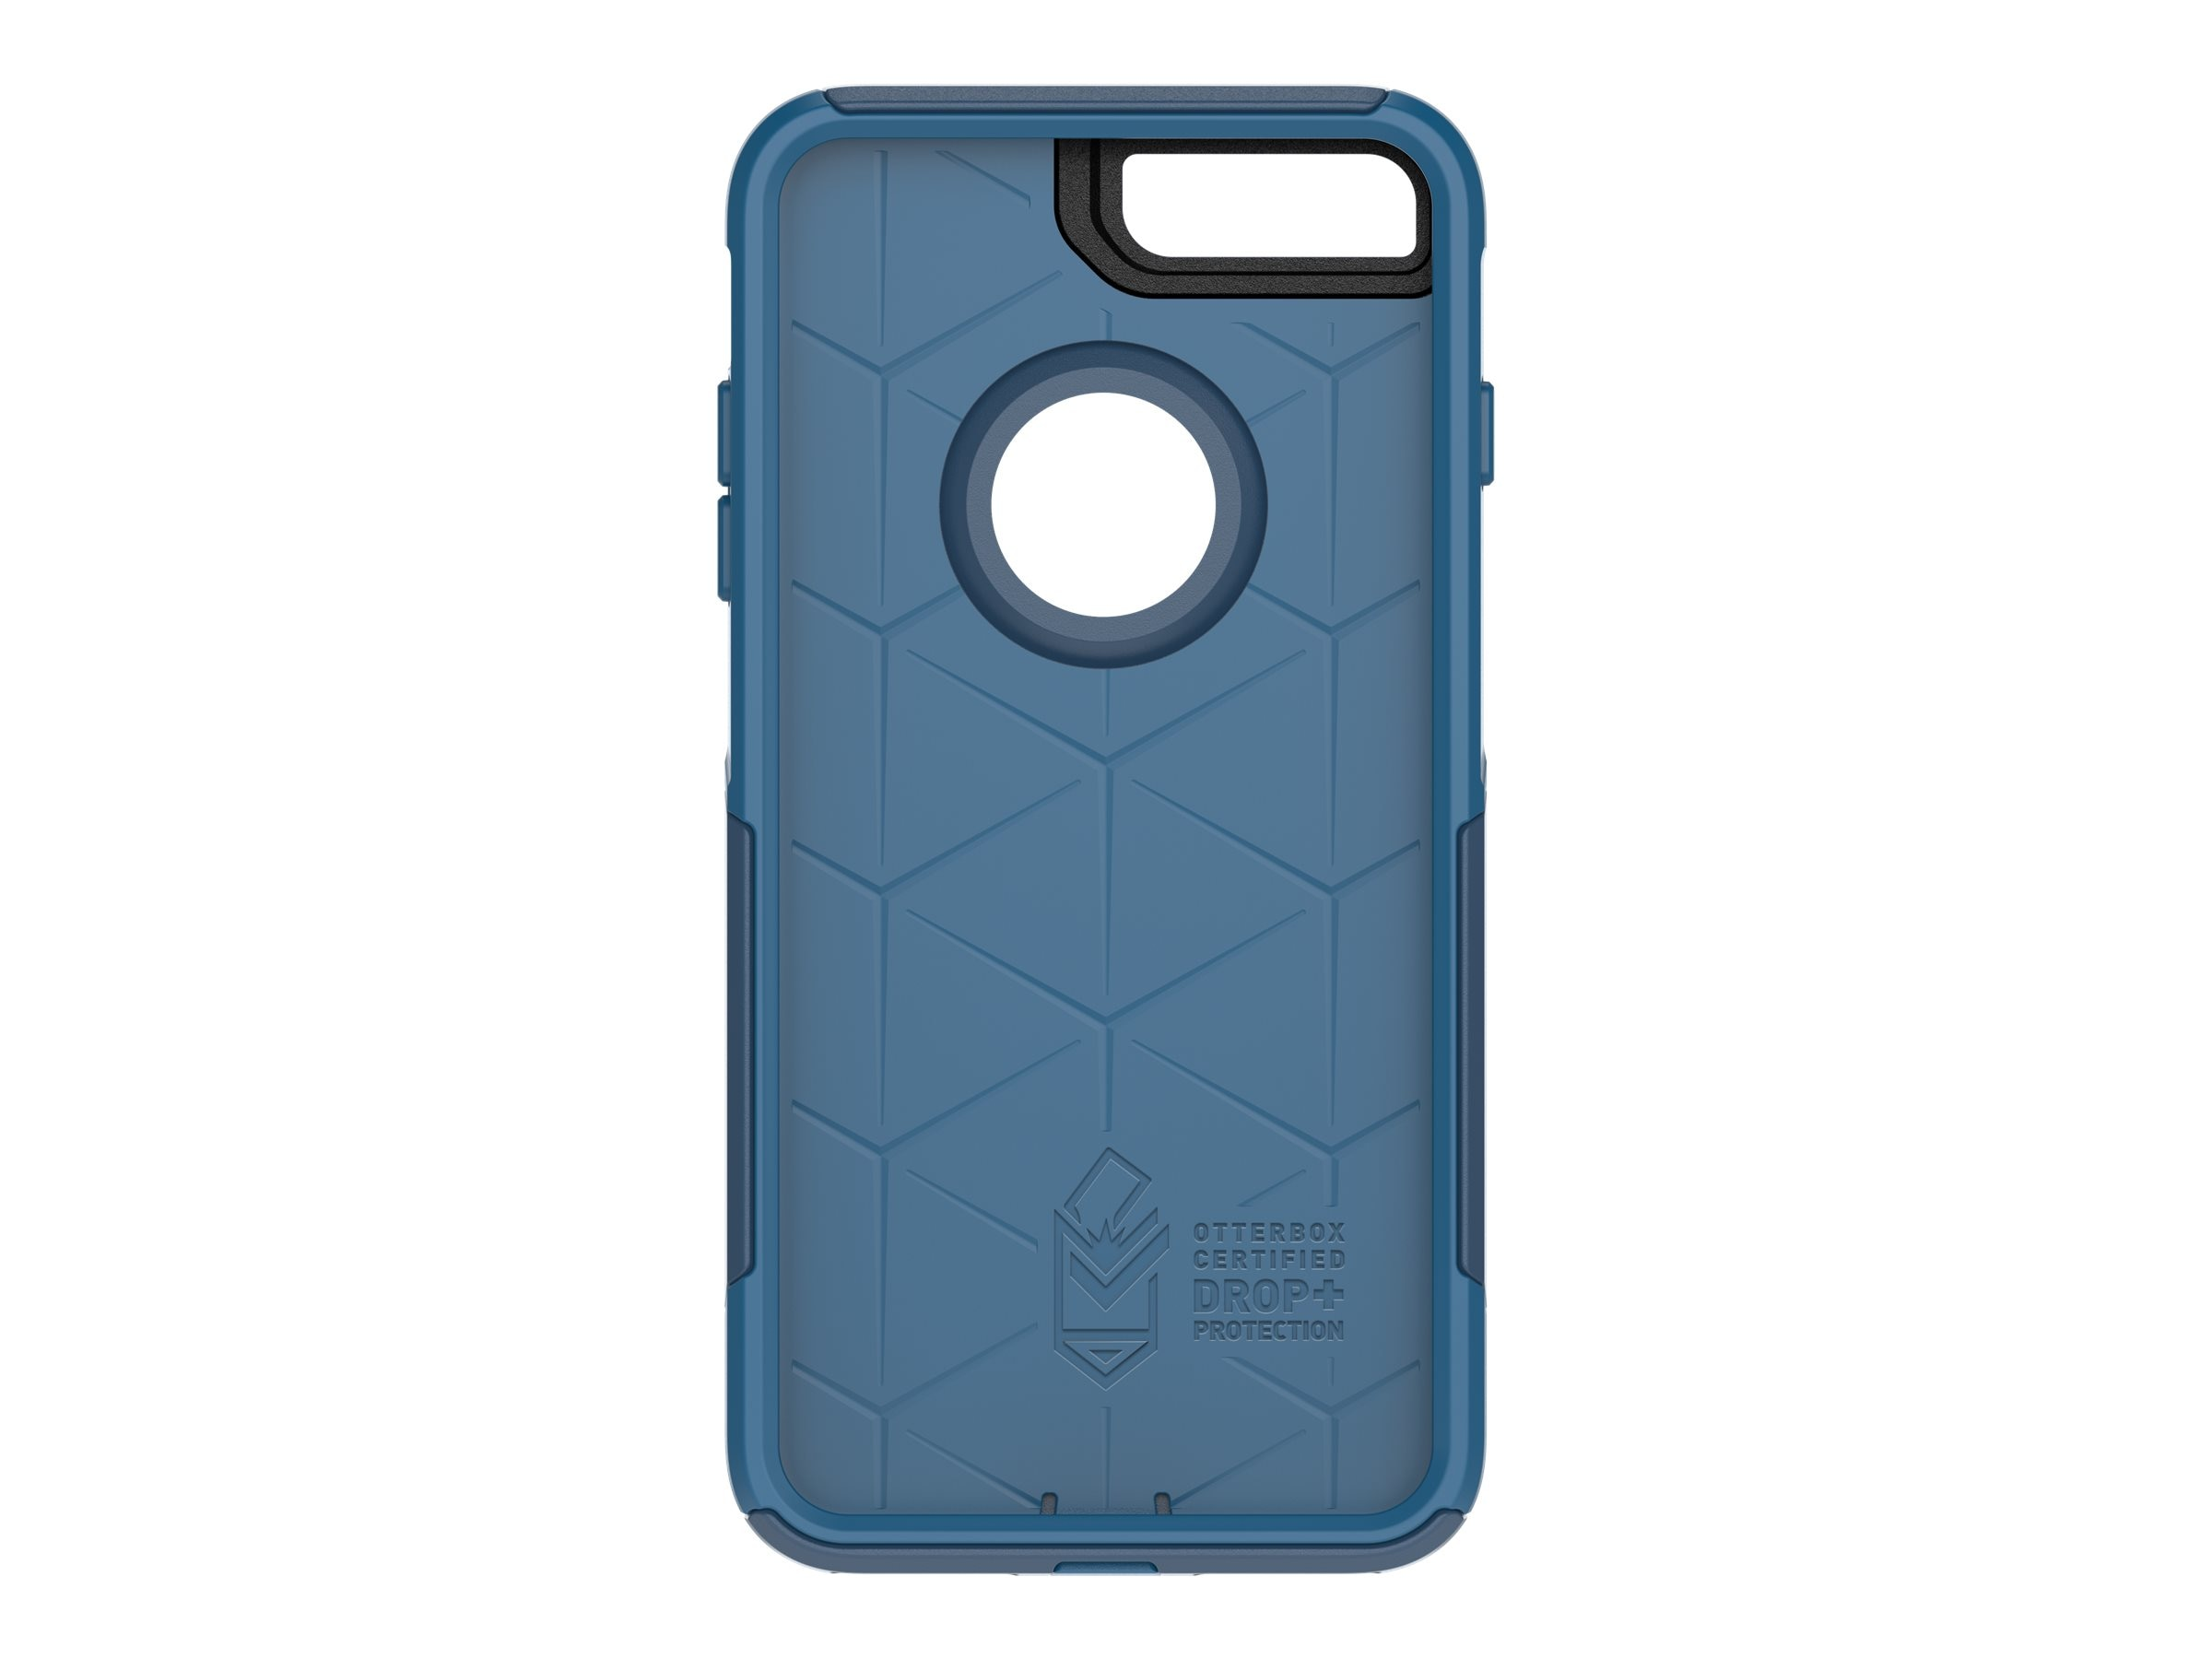 OtterBox Commuter Case for iPhone 7 Plus, Bespoke